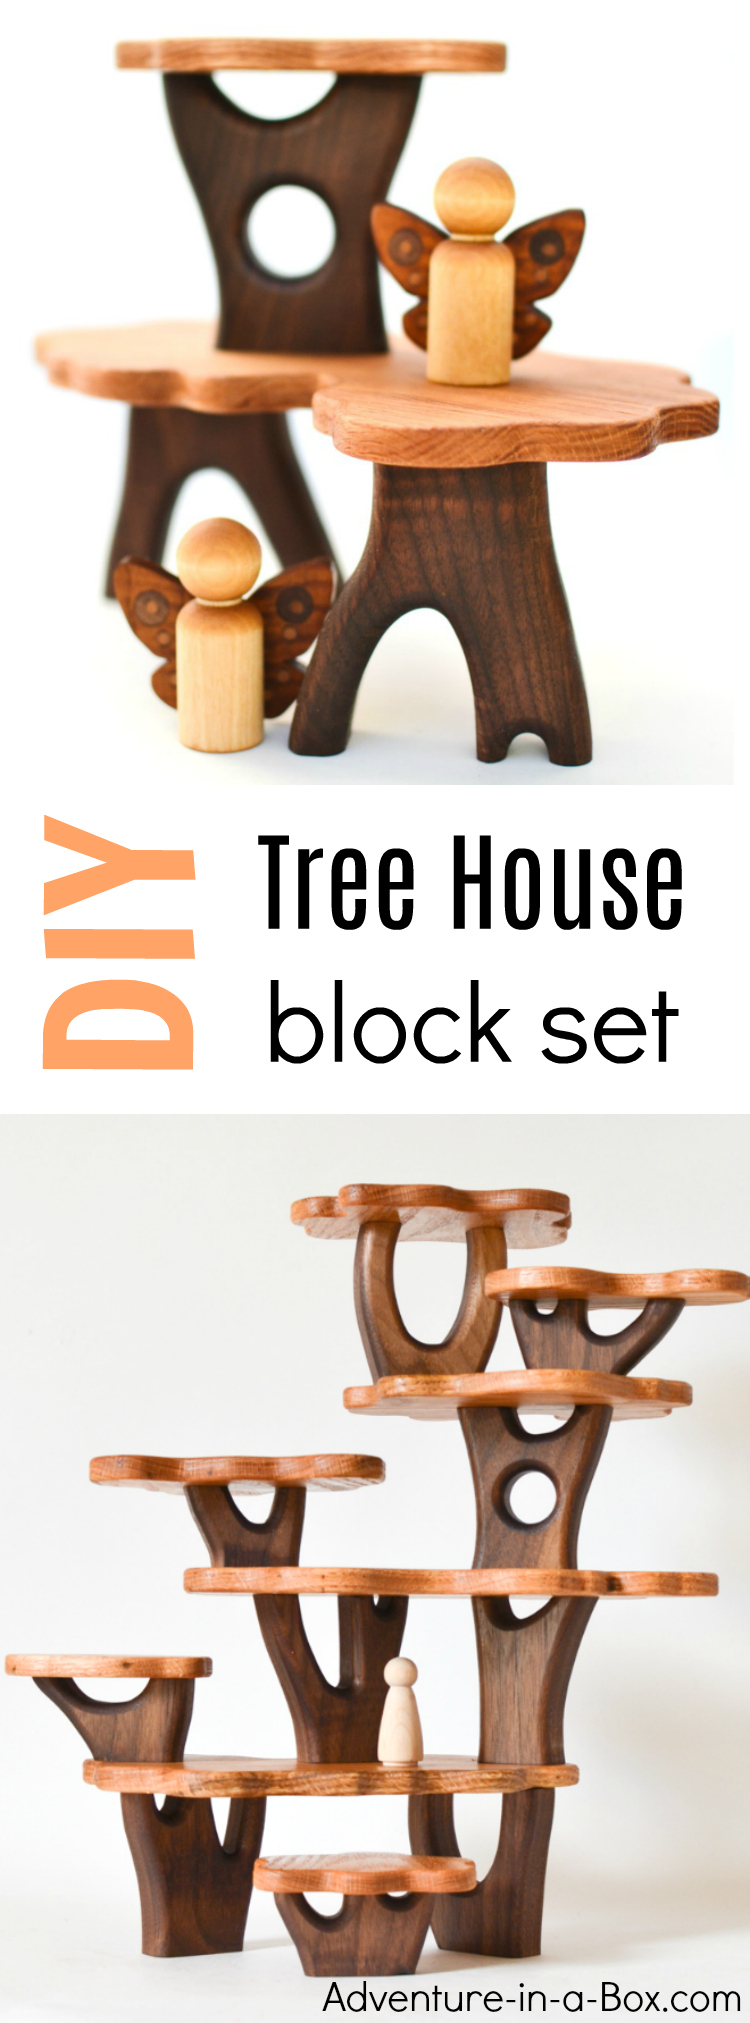 These handmade tree house blocks open new opportunities for block play, allowing children to create natural-looking constructions and multi-levelled tree houses for fairies and forest creatures to settle in. Great for Waldorf environment and any nature lover!